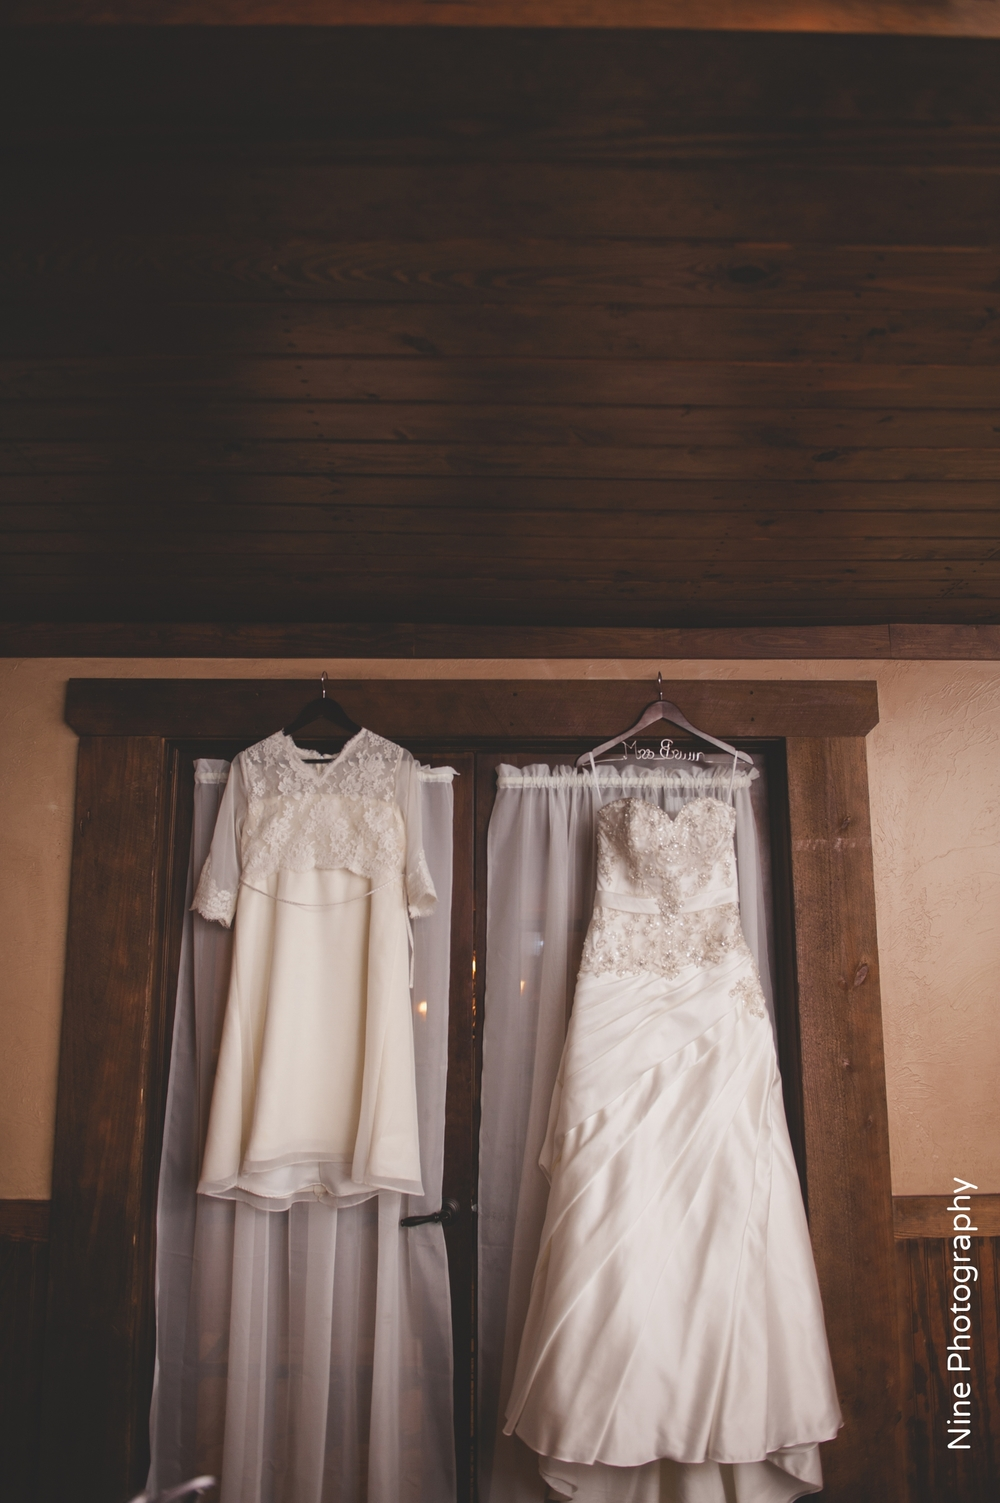 Wedding Gown and Rehearsal Dress